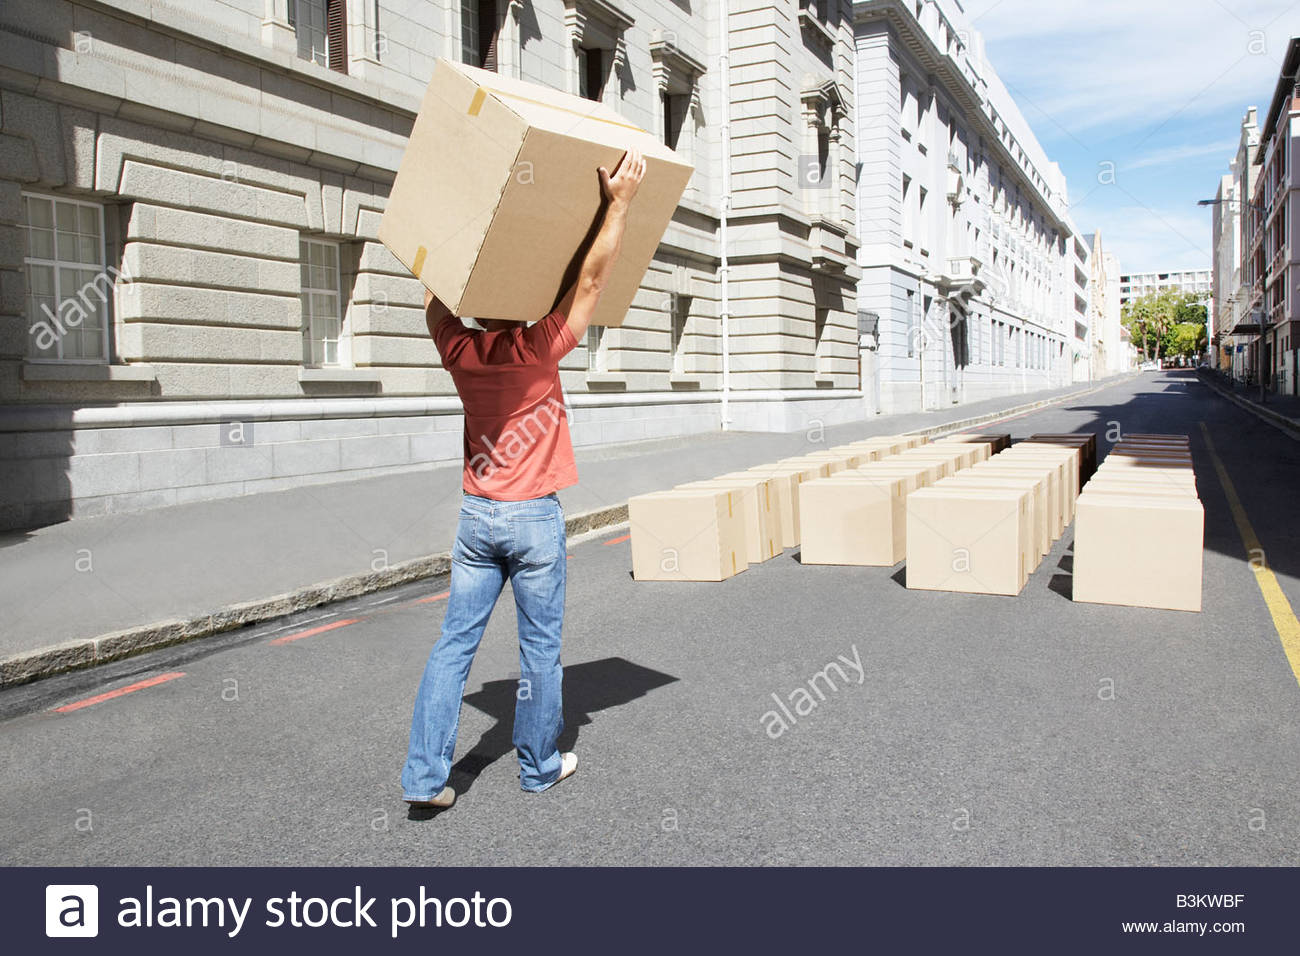 Man carrying box in roadway - Stock Image